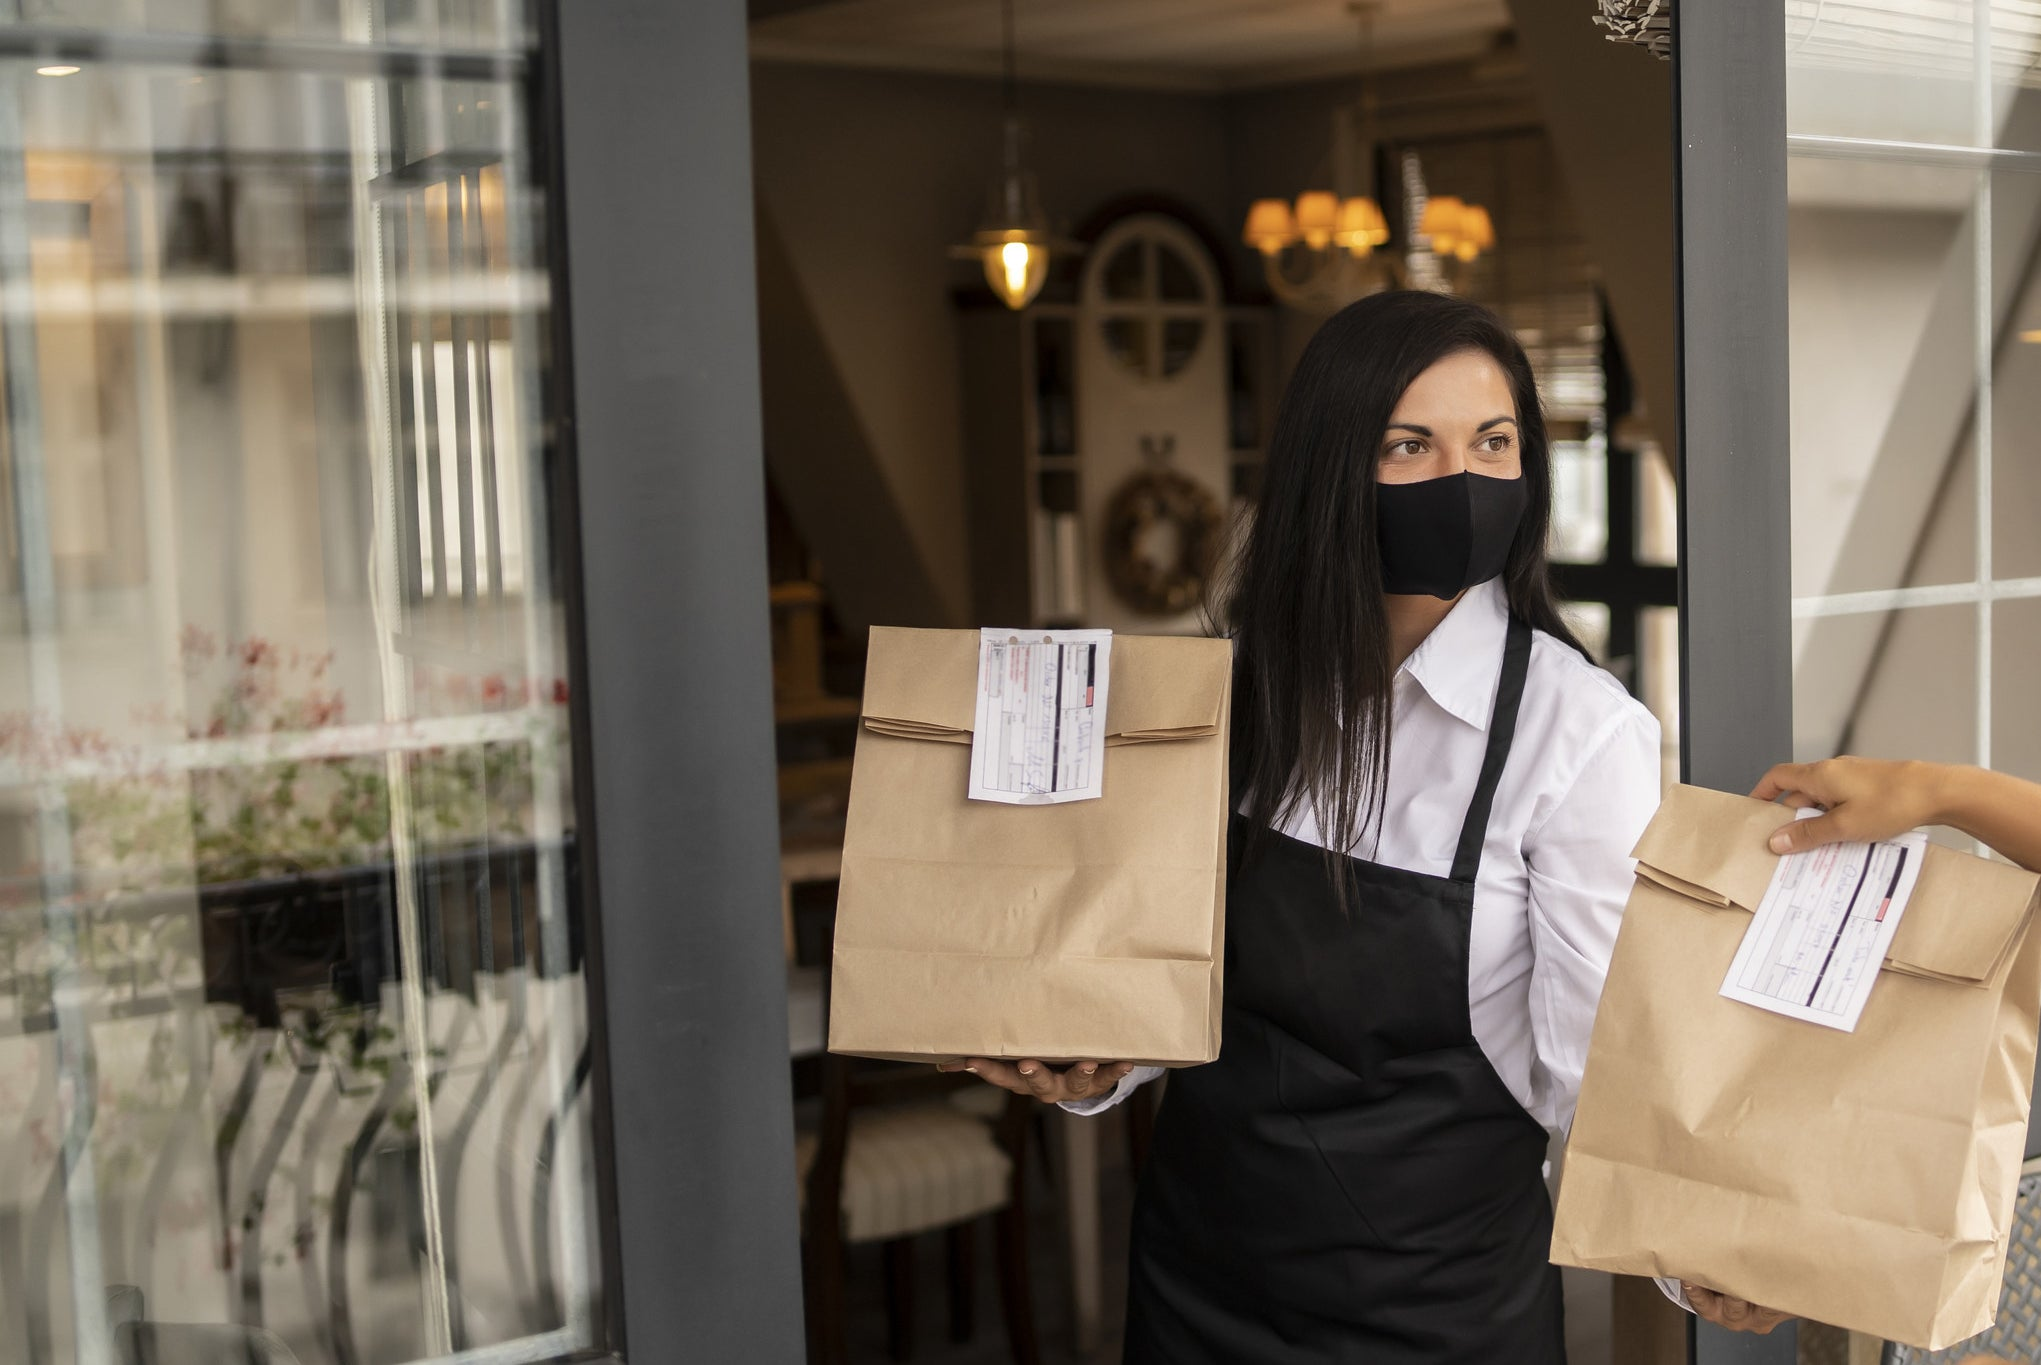 A server handing off a to-go order at a restaurant